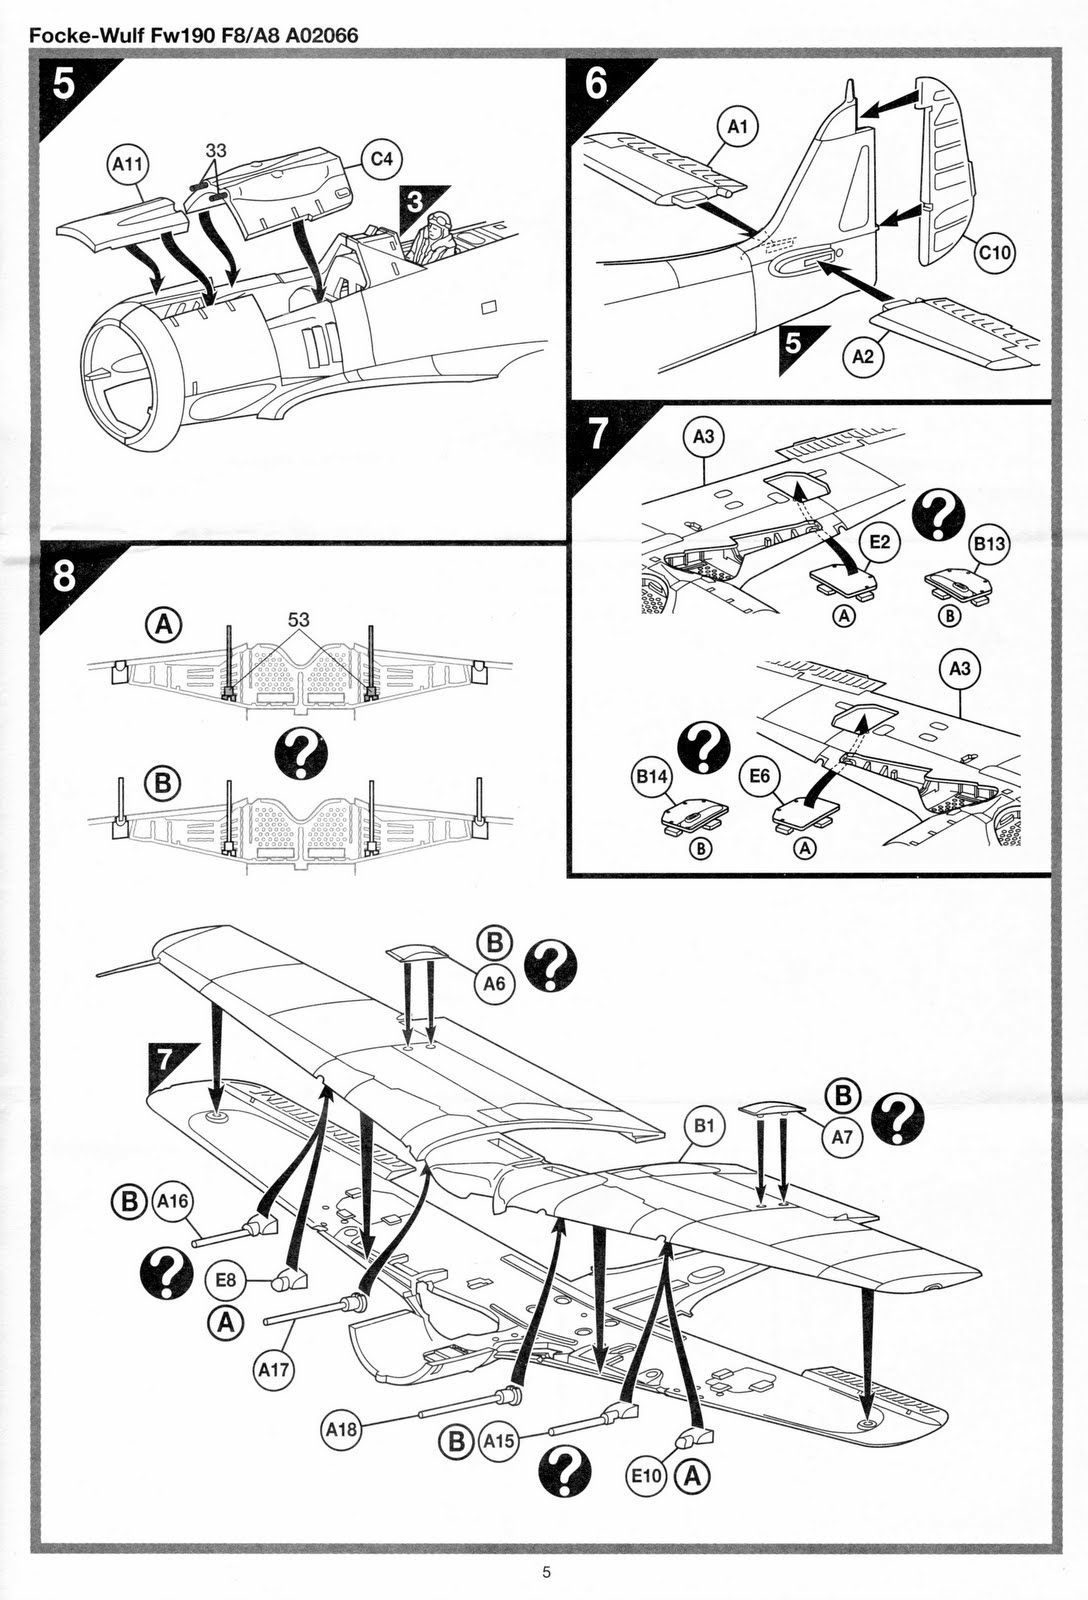 airfix tribute forum instructions